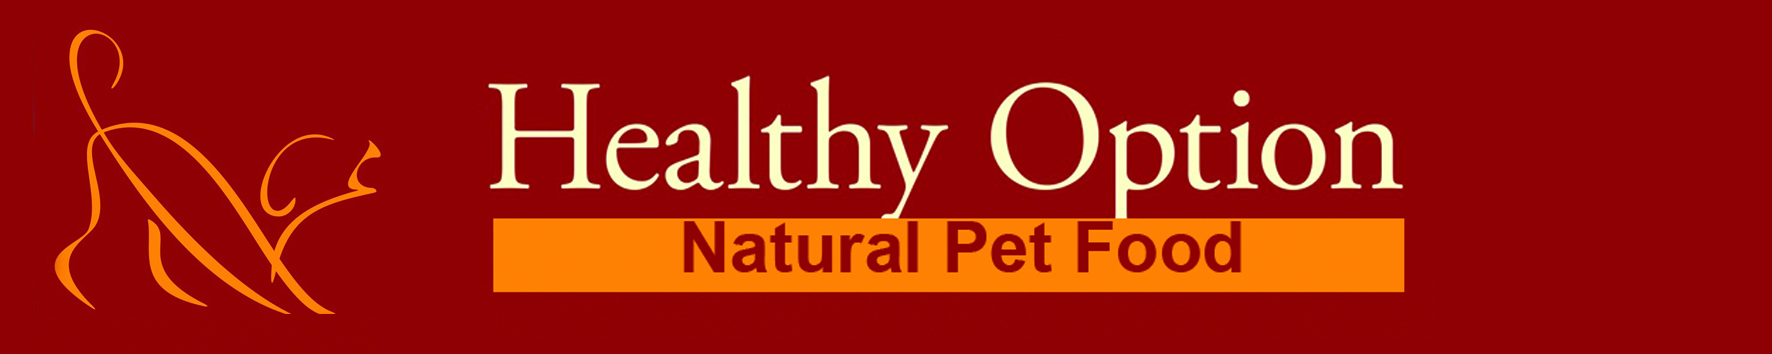 Healthy Option Natural Pet Food Hypo Allergenic Natural